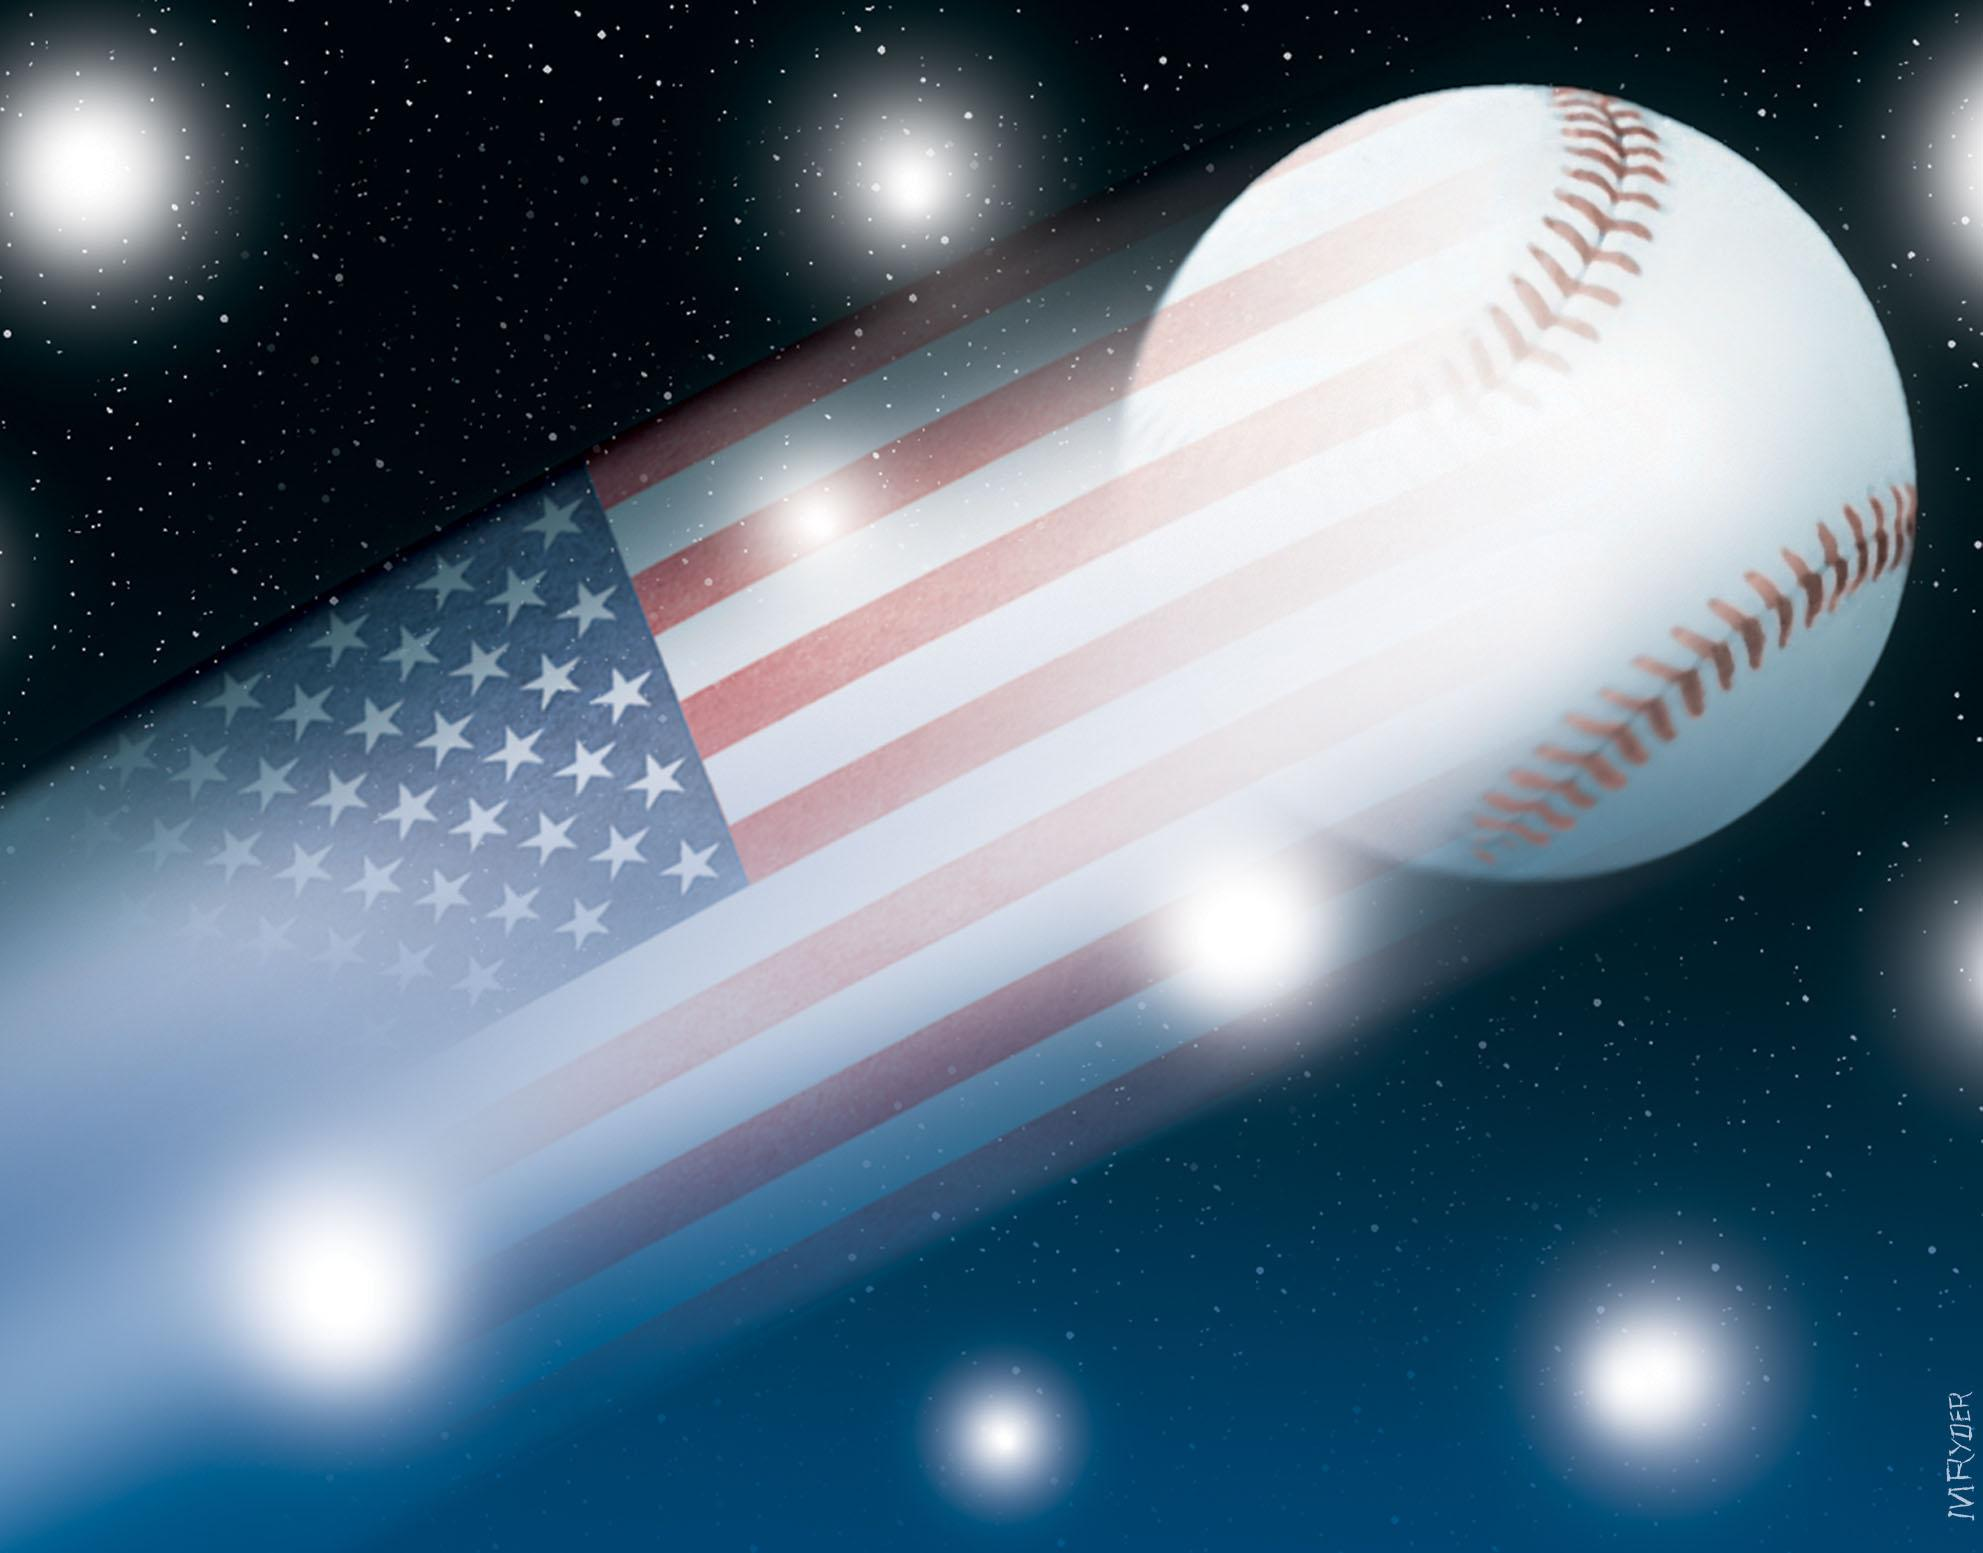 why baseball is americas pastime Baseball america's pastime - k & p weaver, llc step back in time to where america's pastime comes to life.